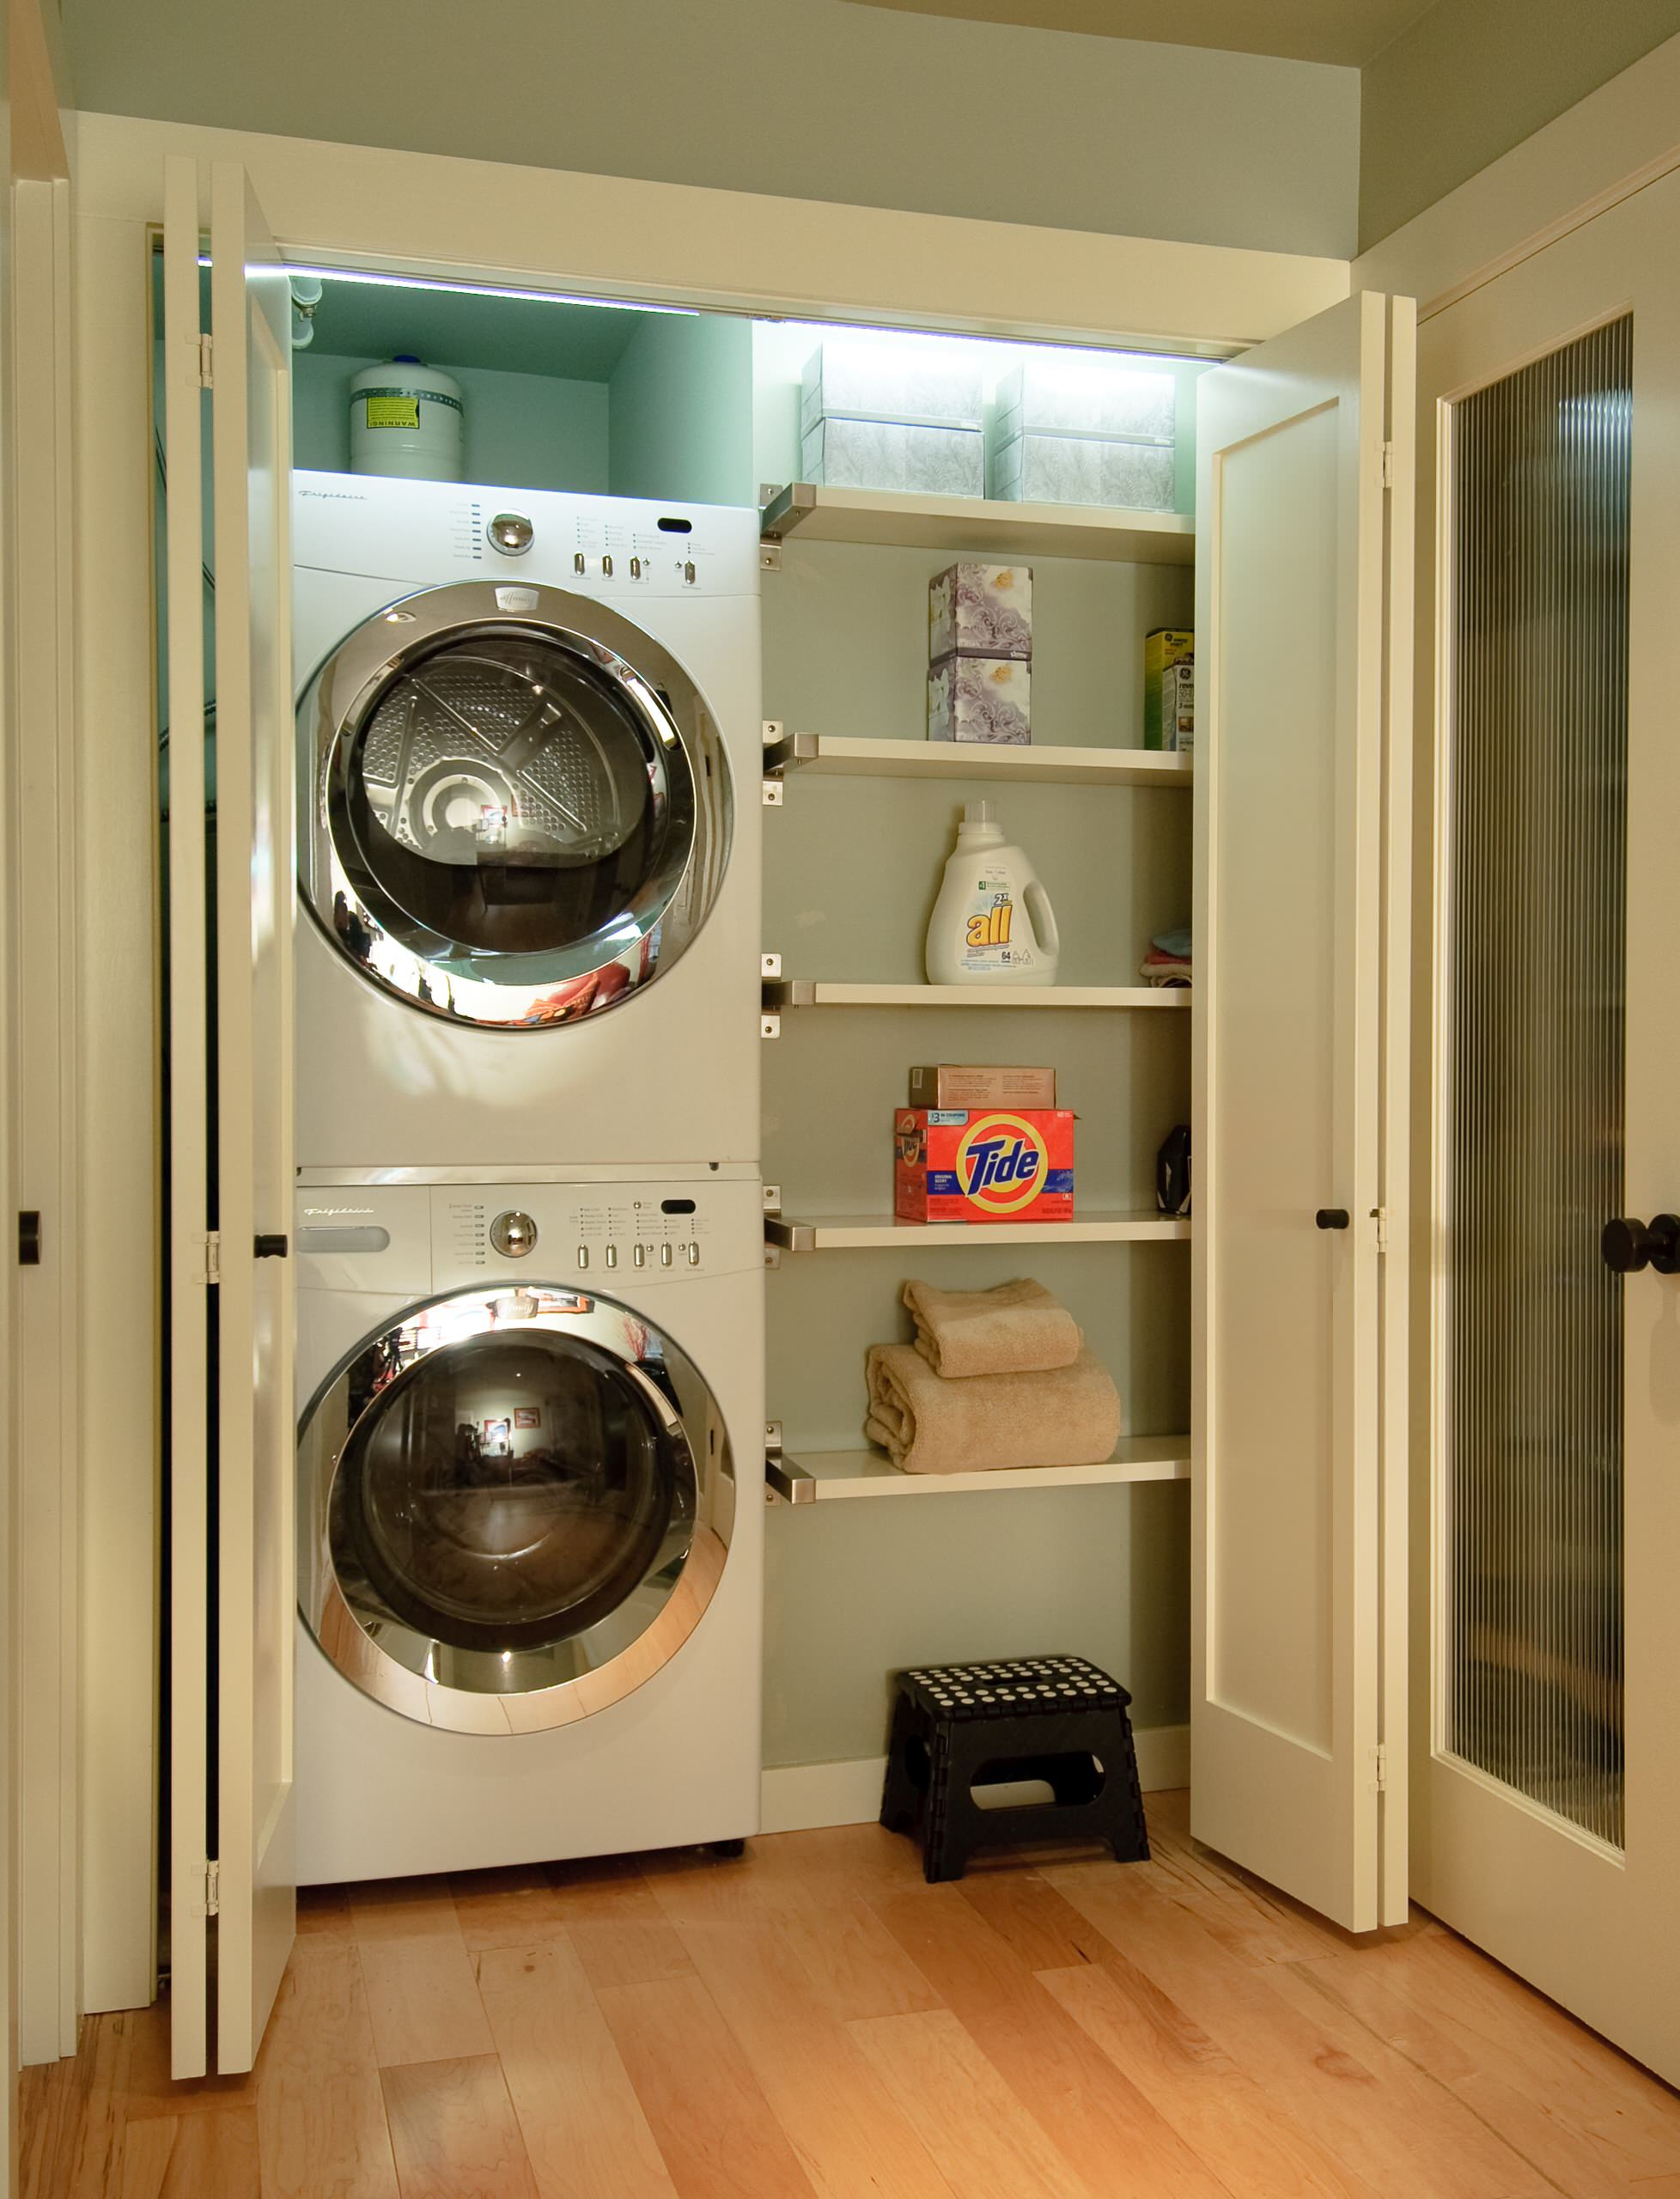 15 Beautiful Stacked Washer/Dryer Laundry Room Pictures & Ideas